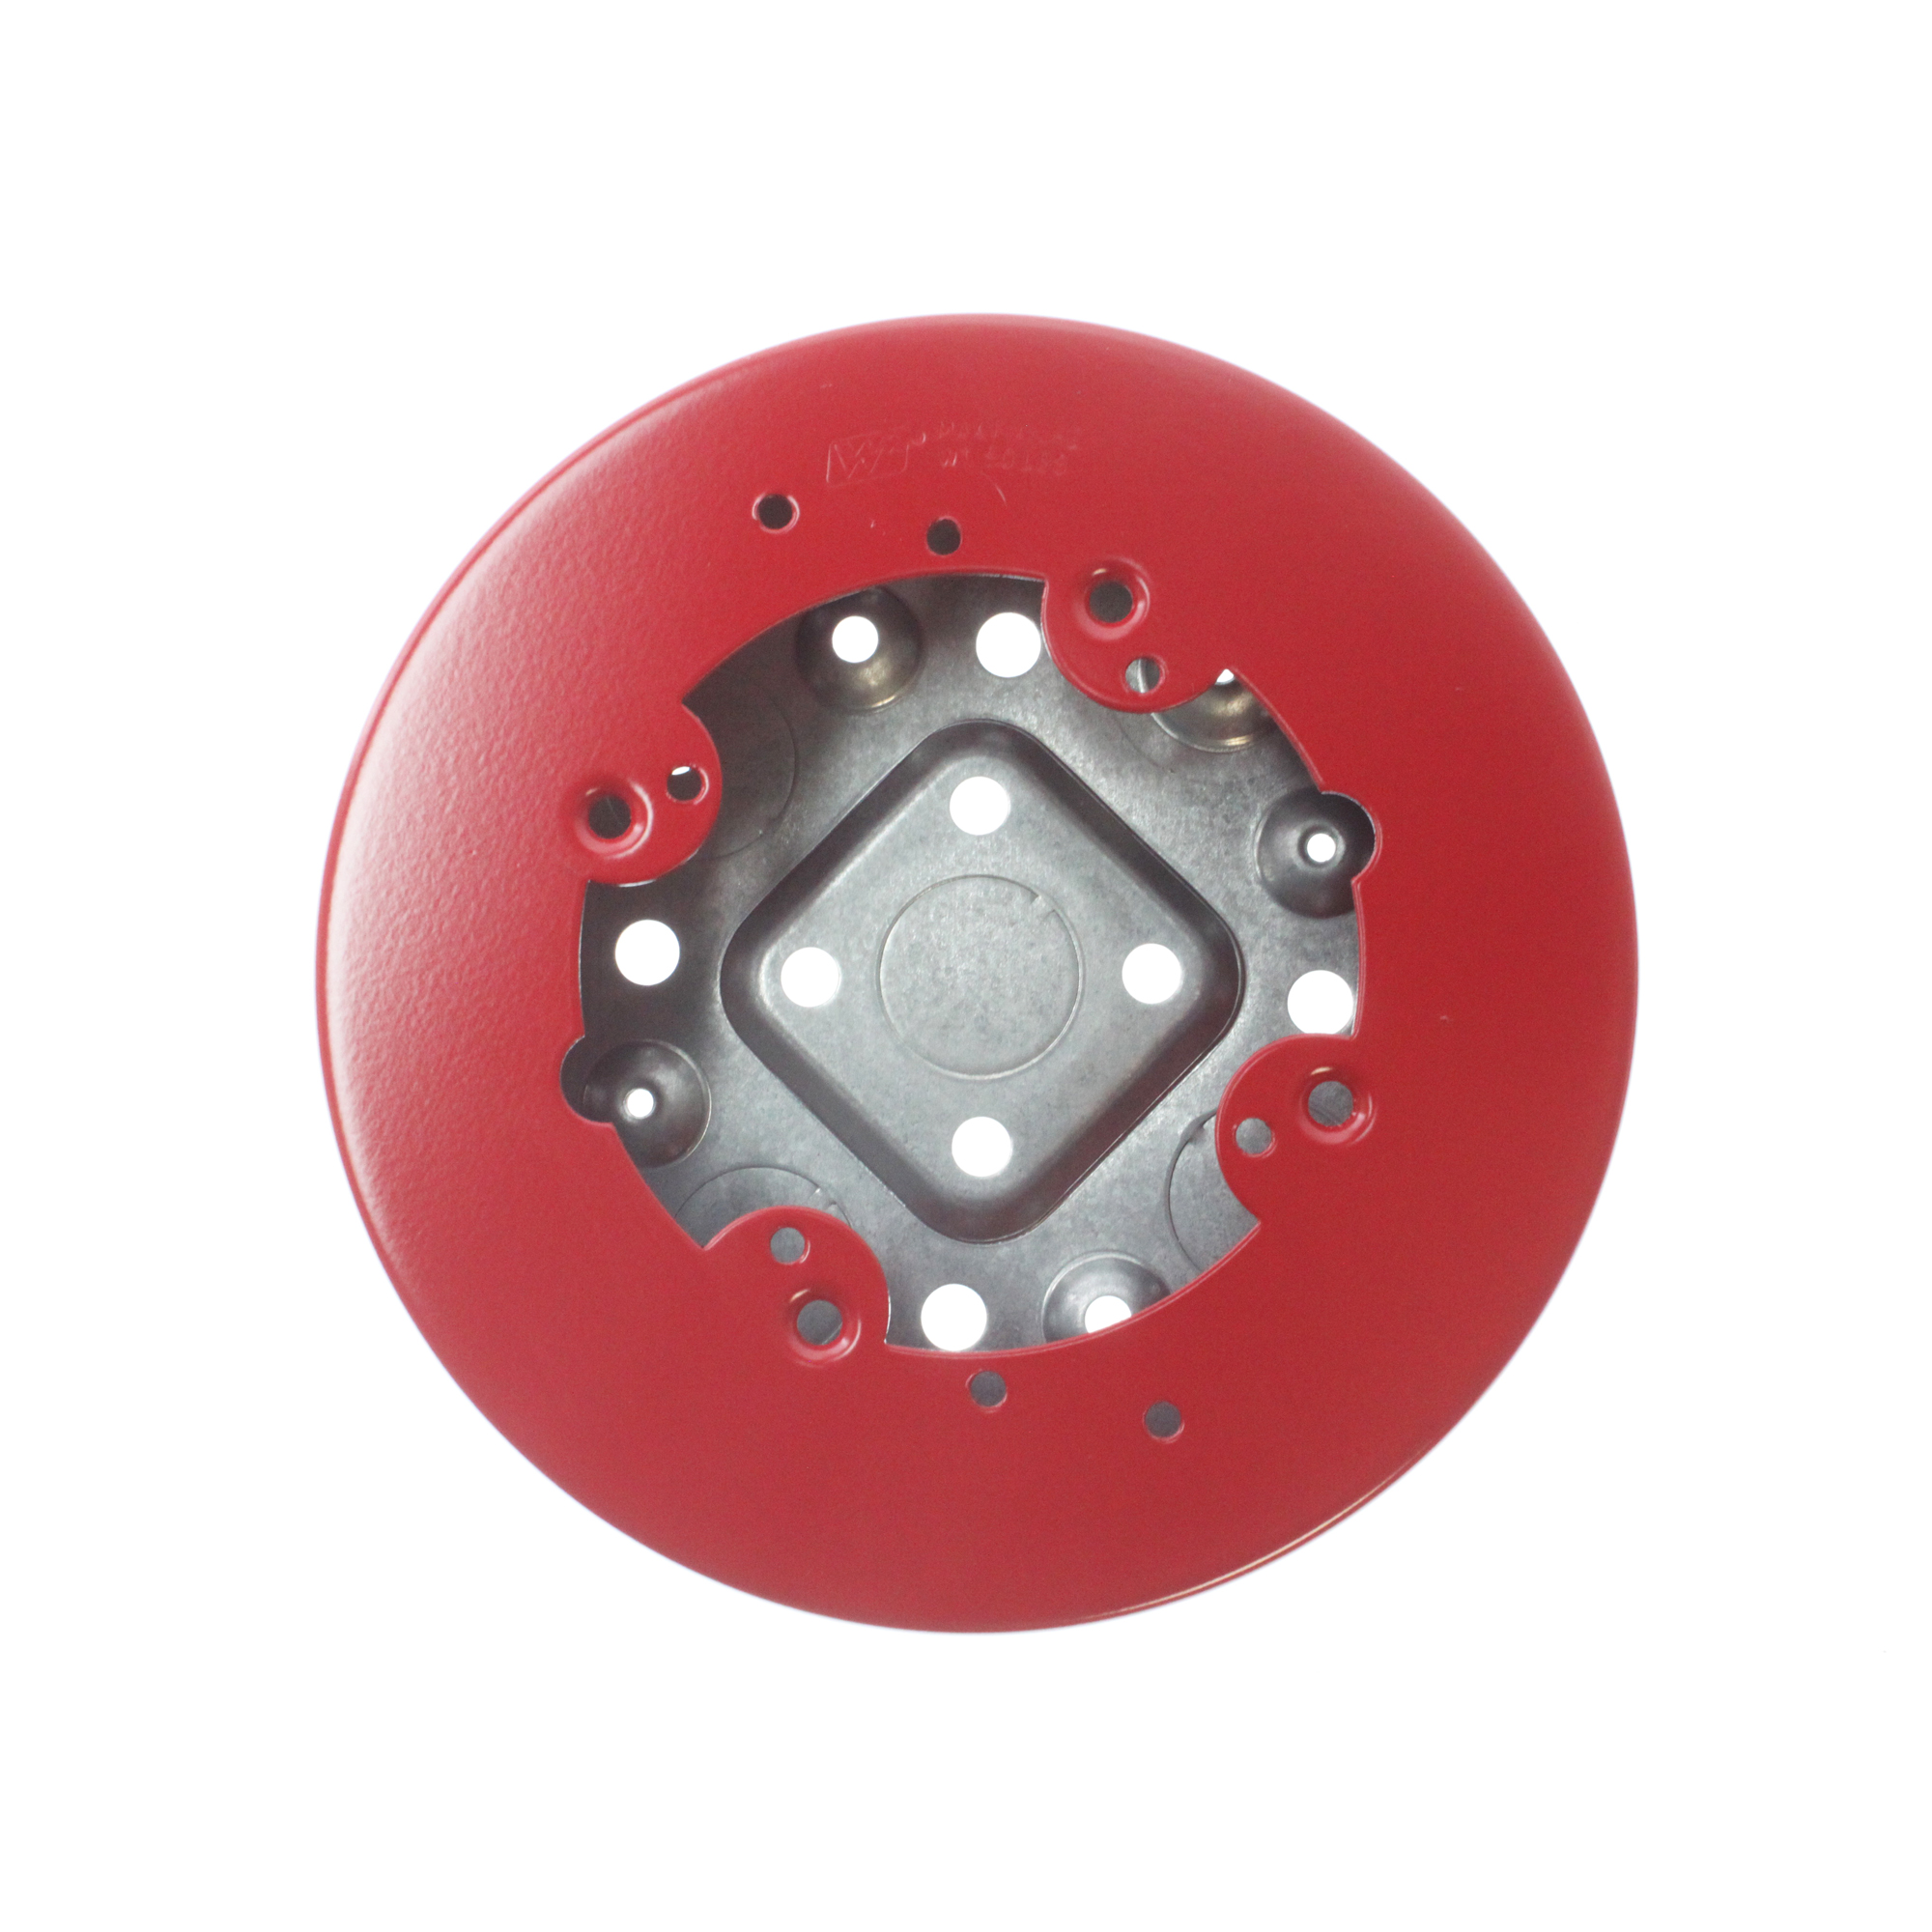 Wiremold V5738A-RED 500/700 Series Fire Alarm Fixture Box, Red